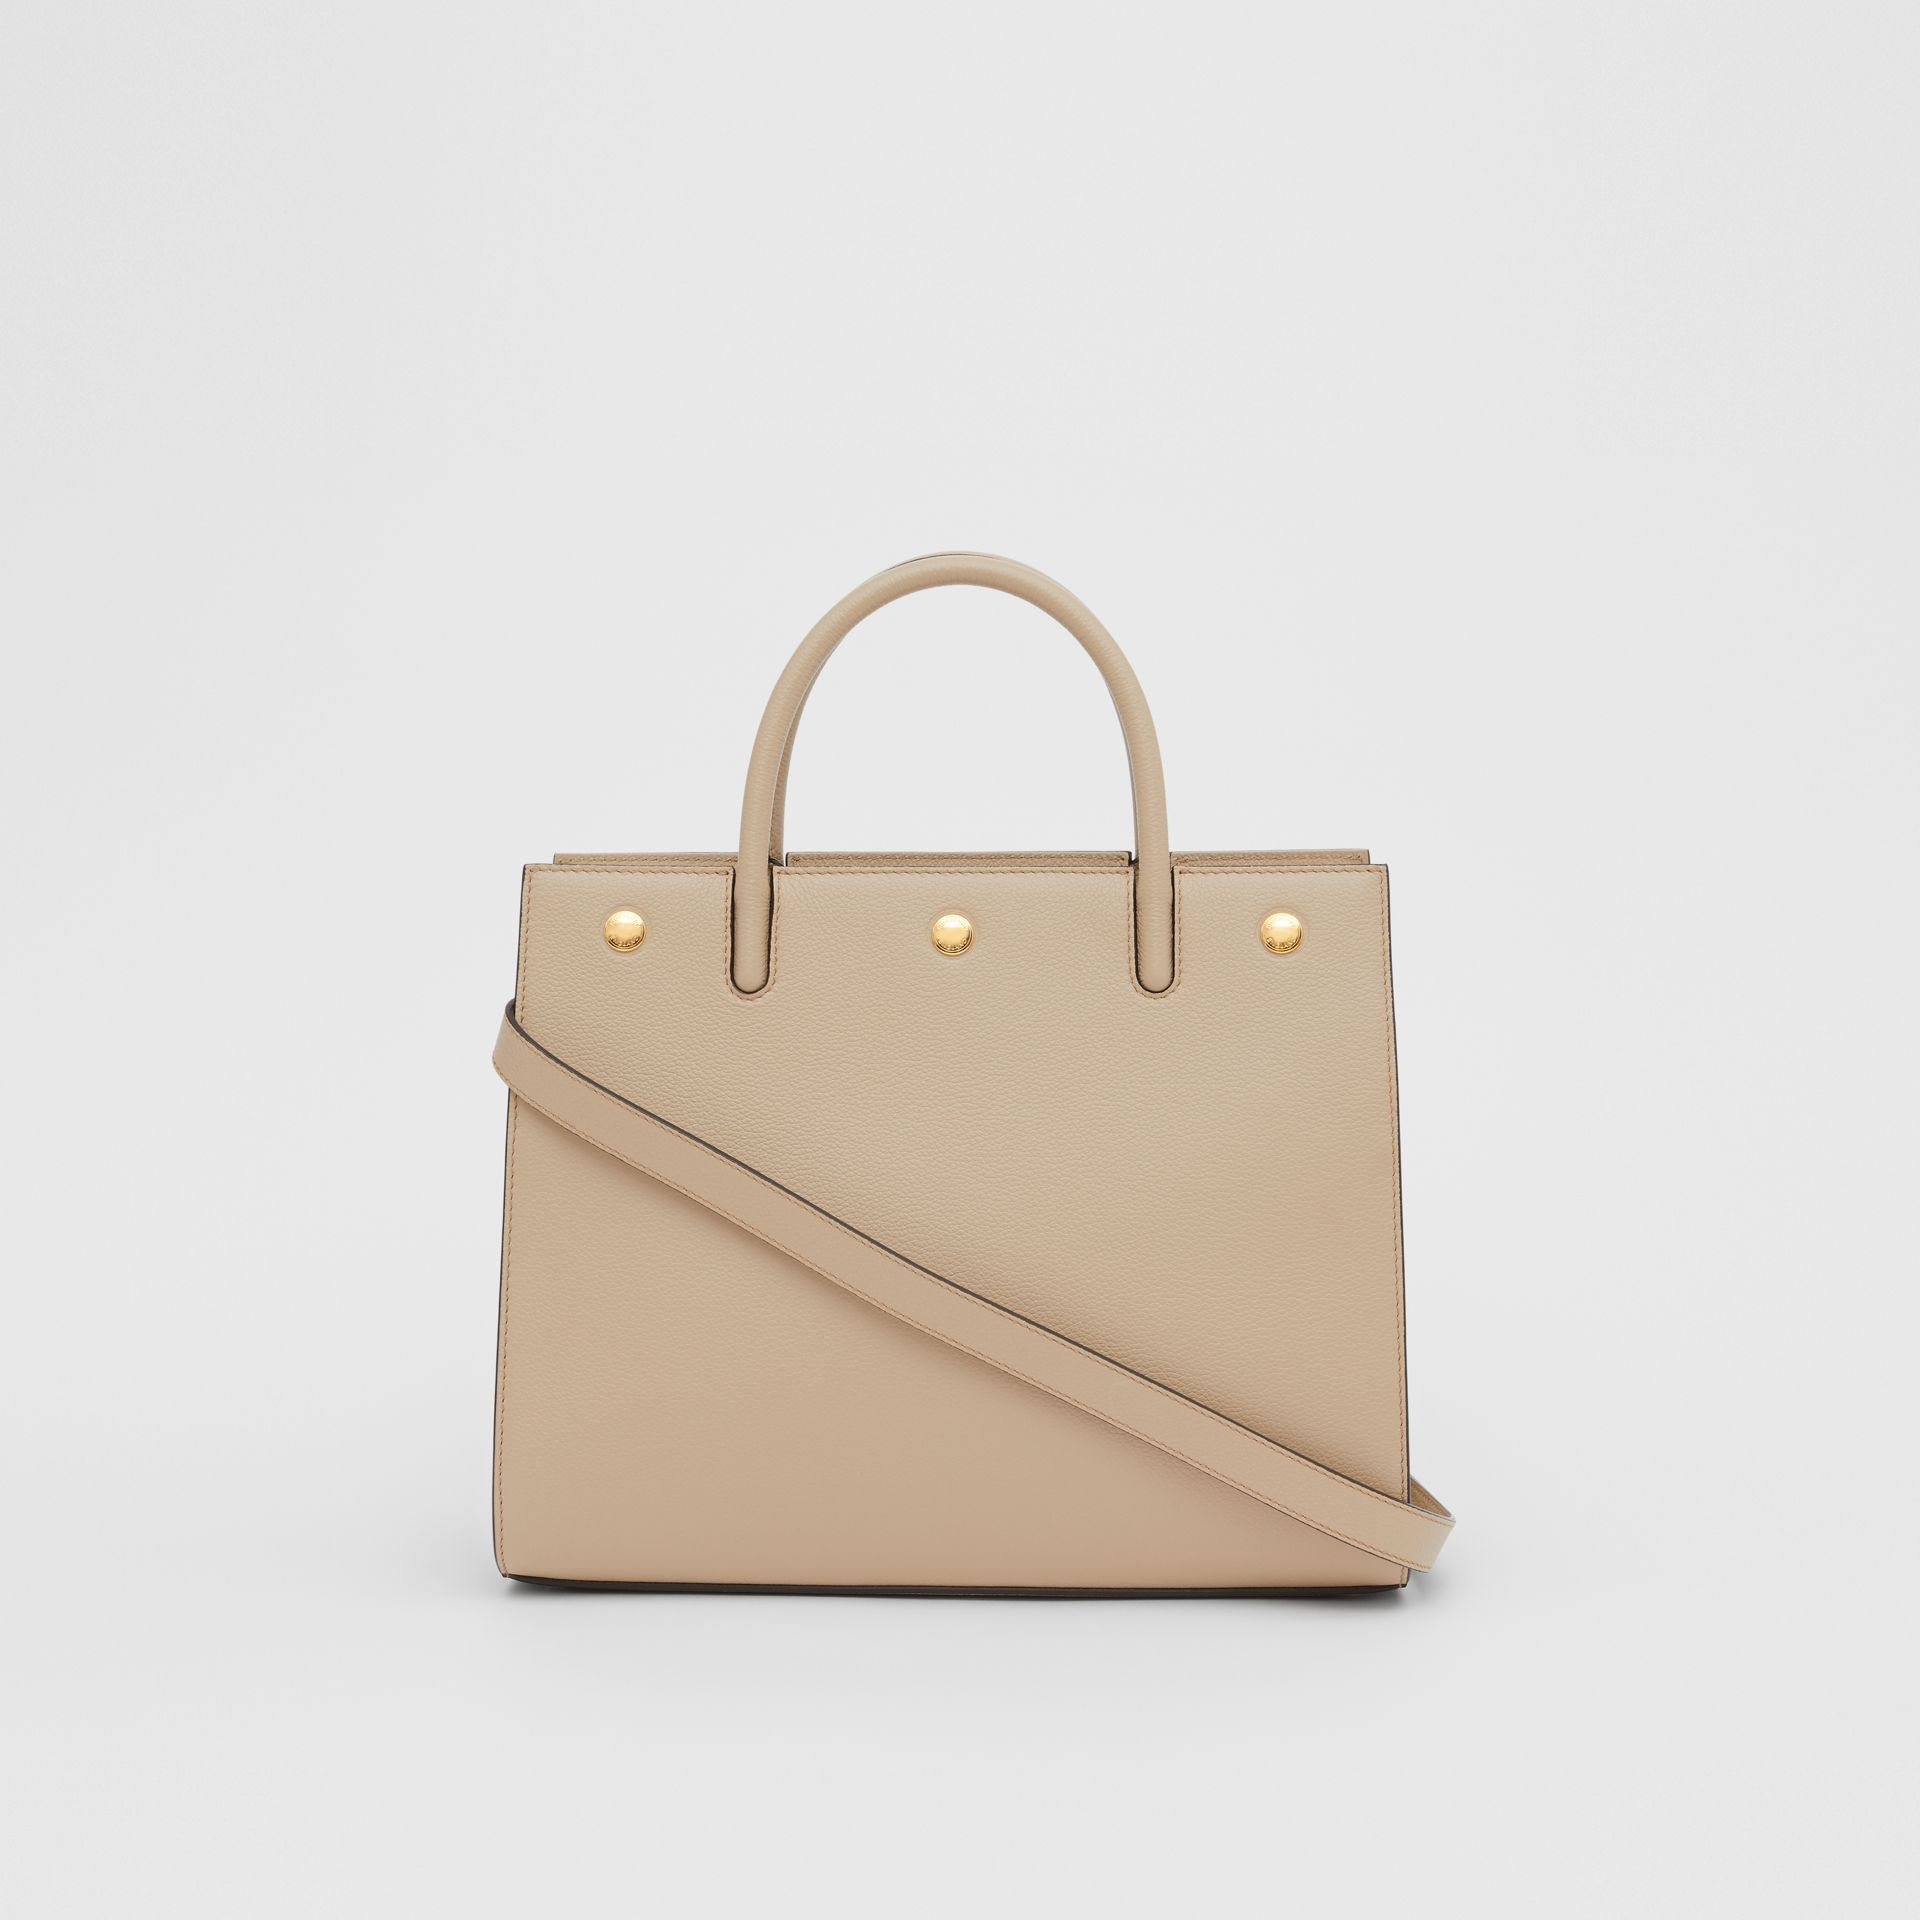 Small Leather Two-handle Title Bag in Light Beige - Women | Burberry Hong Kong S.A.R - gallery image 7